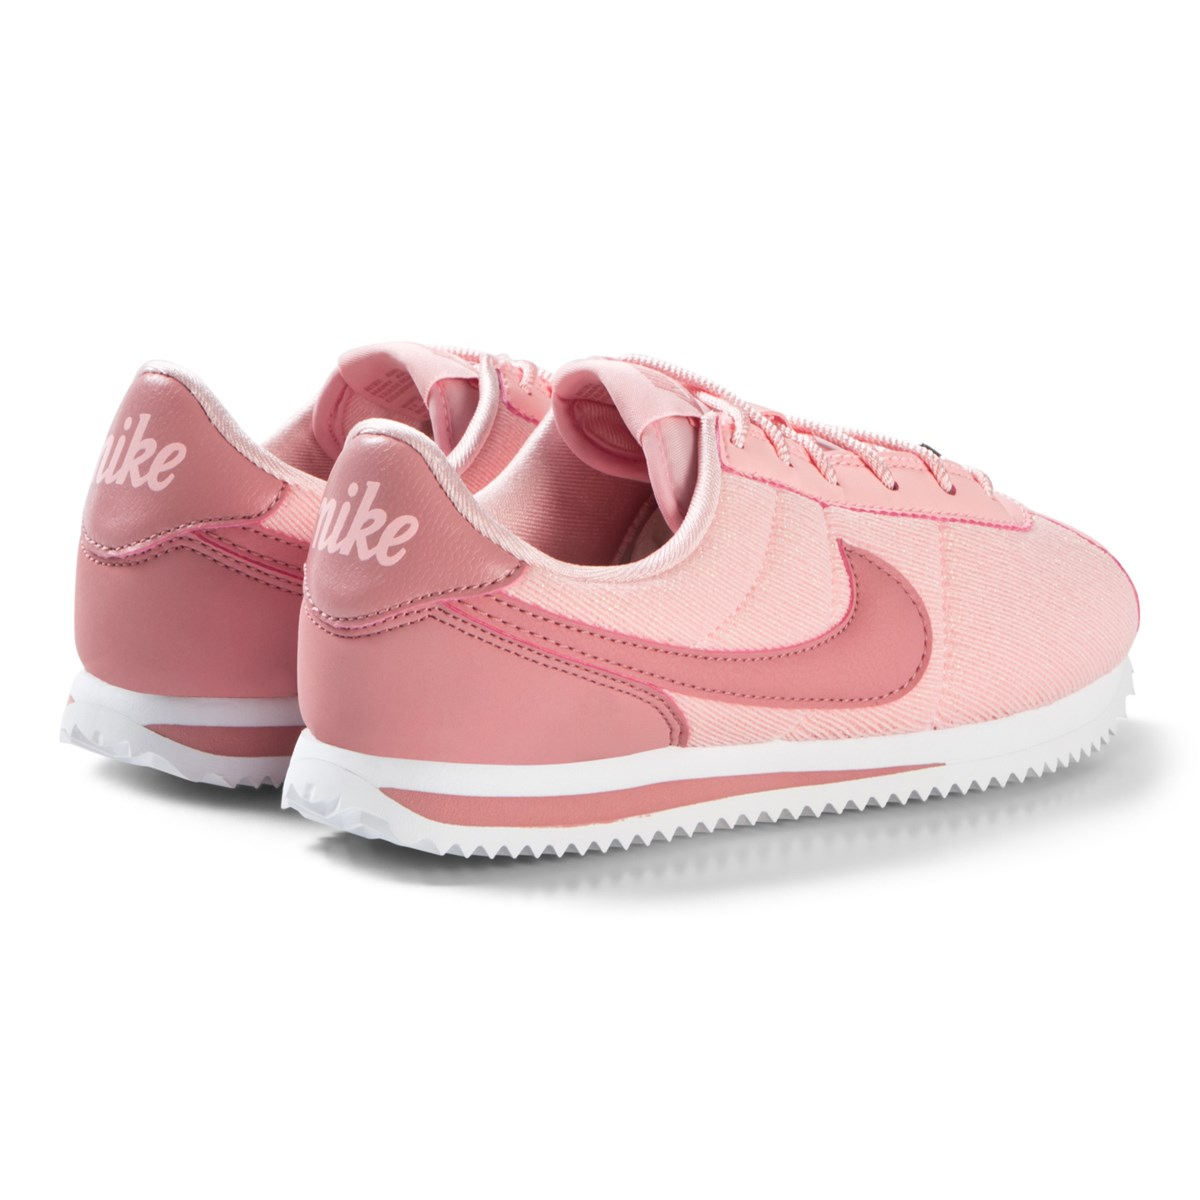 Pink Gucci Shoes For Babies